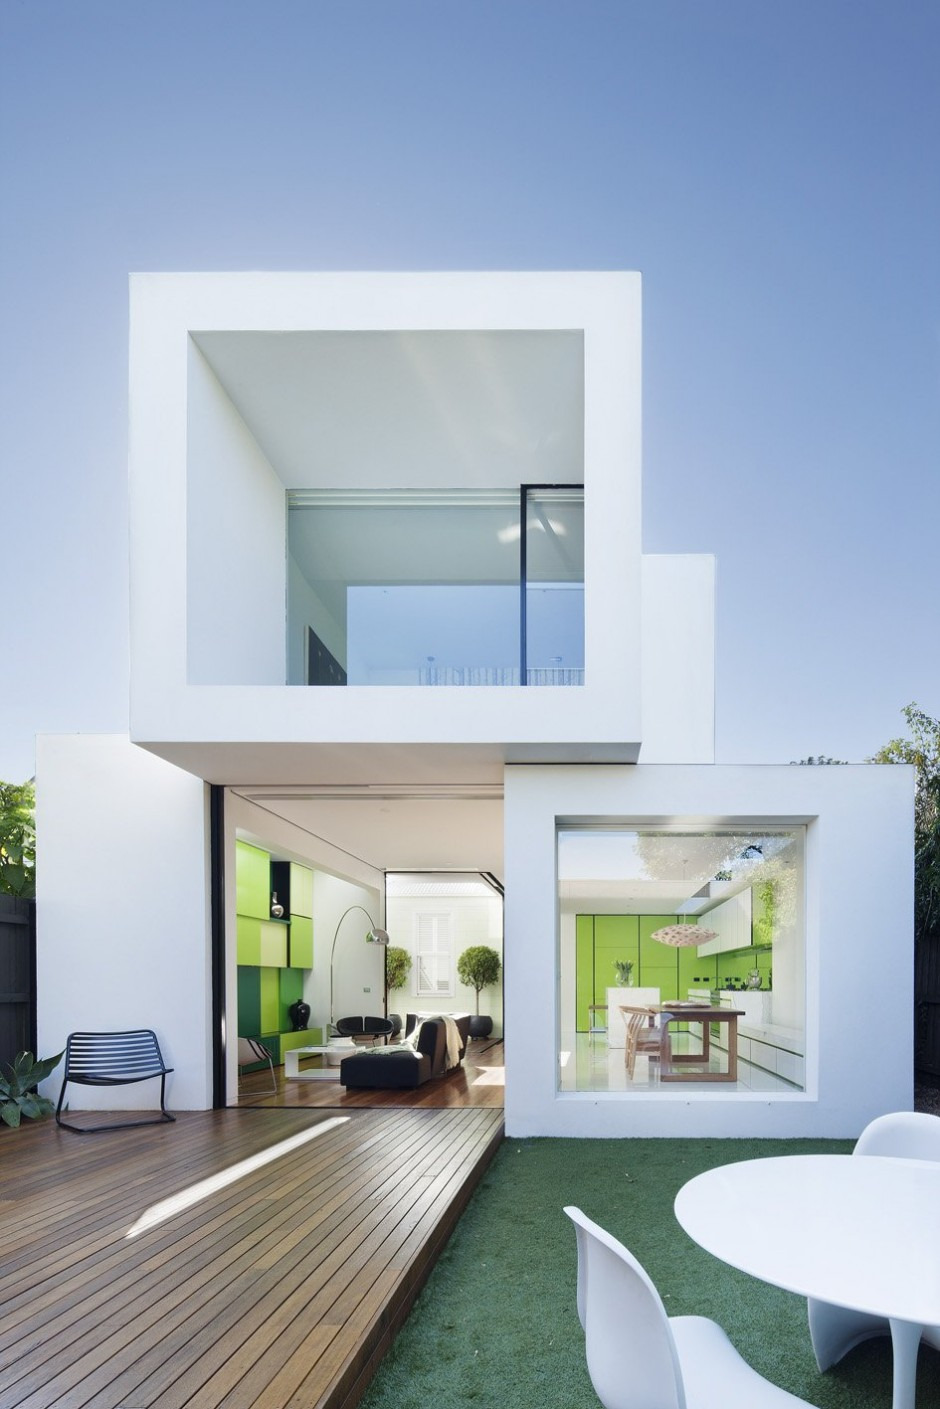 Small Minimalist Home With Creative Design featured on architecture beast 01